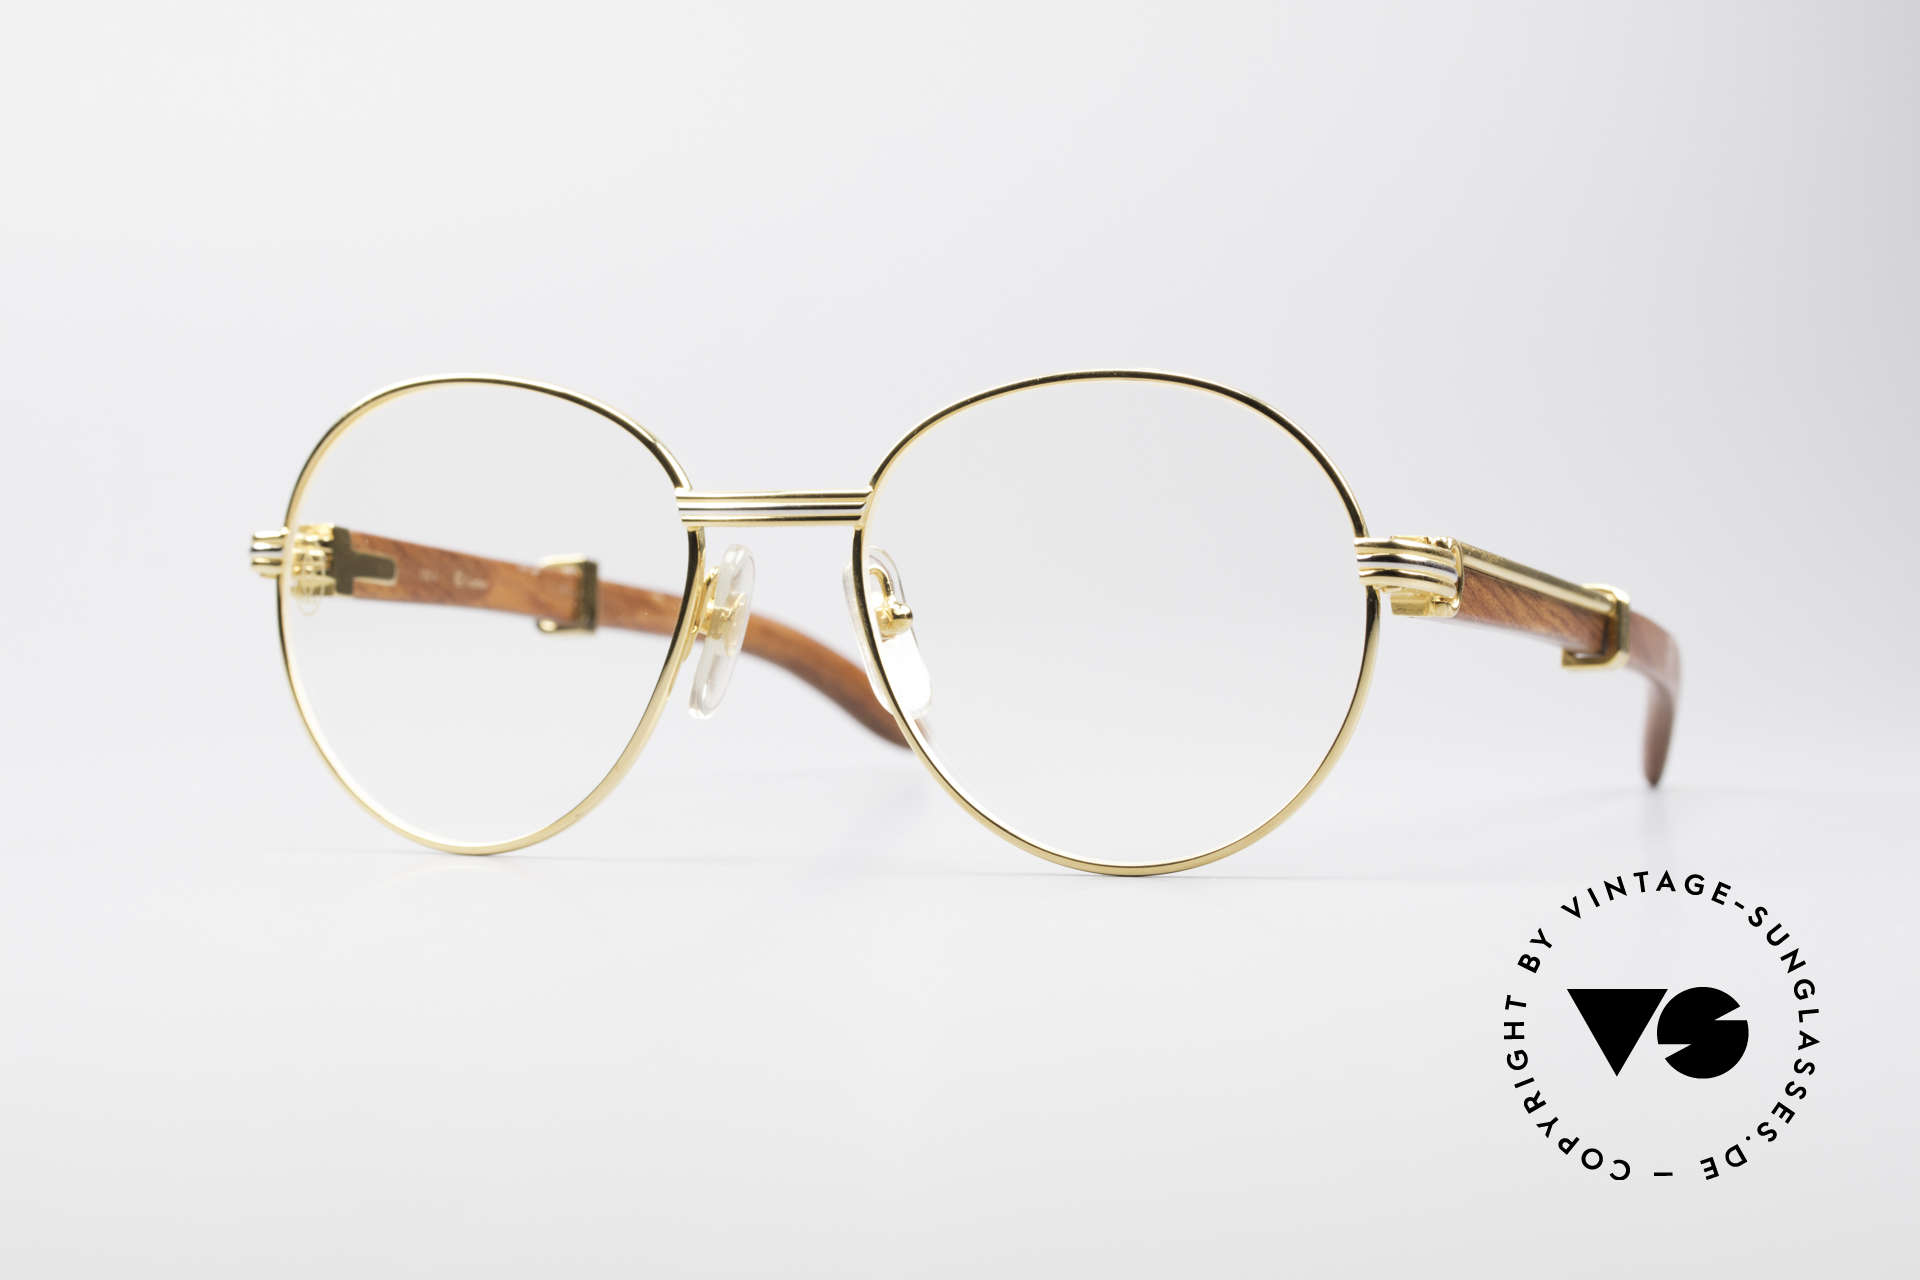 424a856130 Glasses Cartier Bagatelle Bubinga Precious Wood Frame